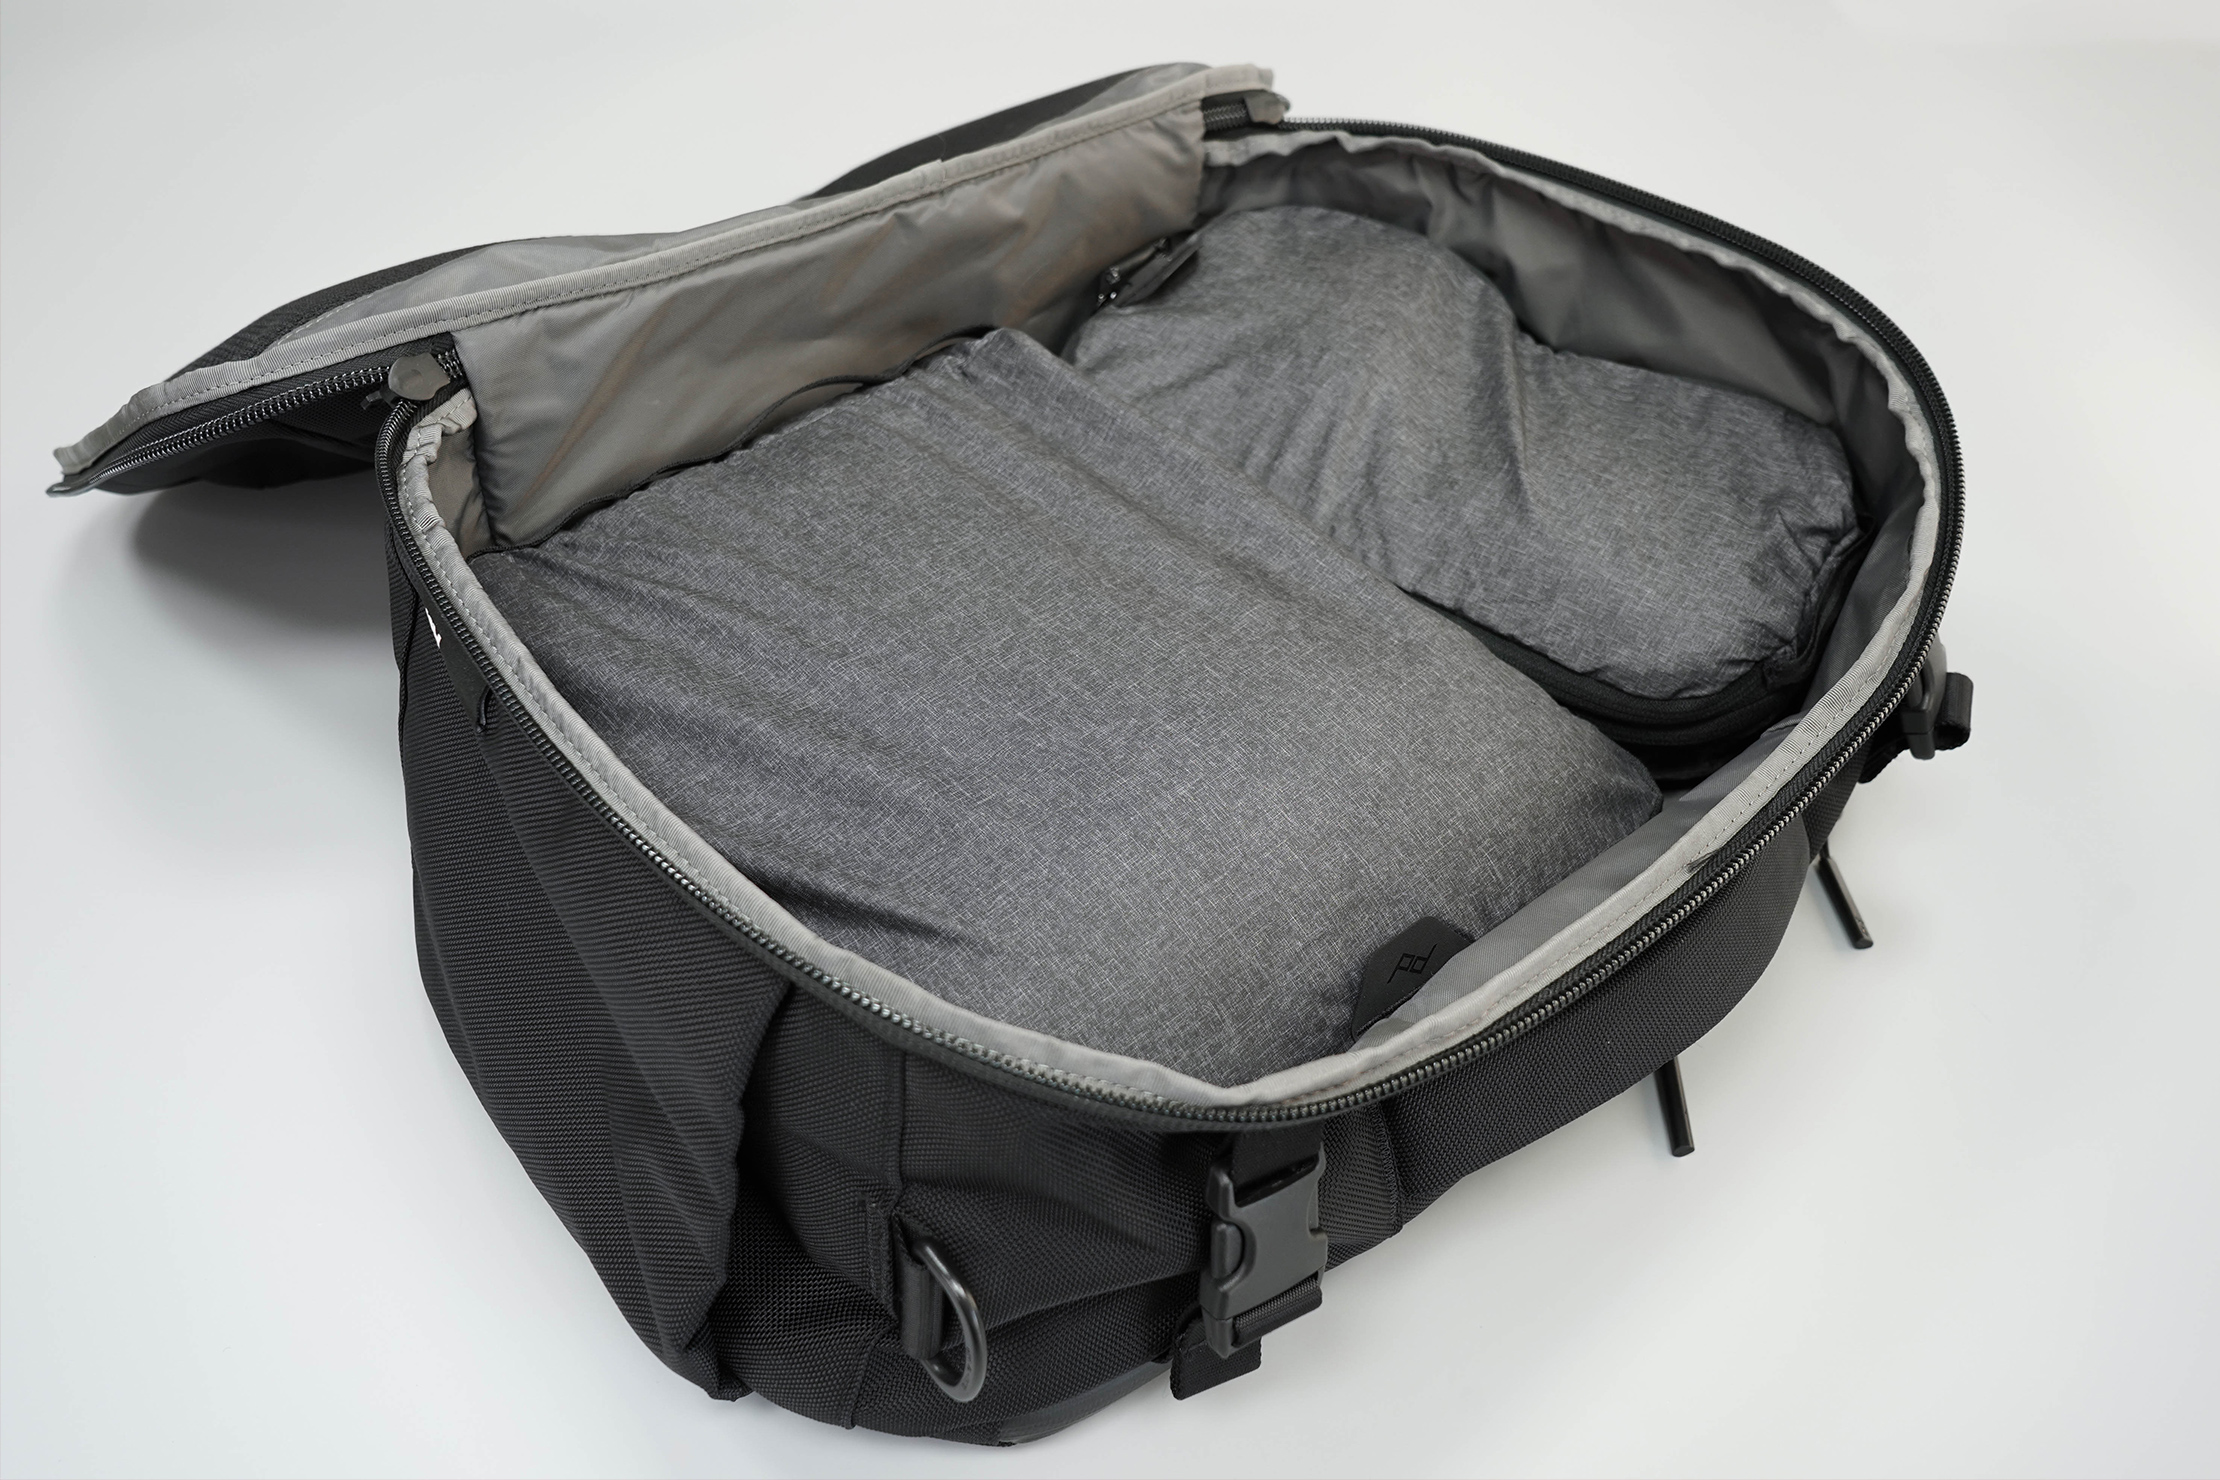 Aer Travel Duffel Main Compartment